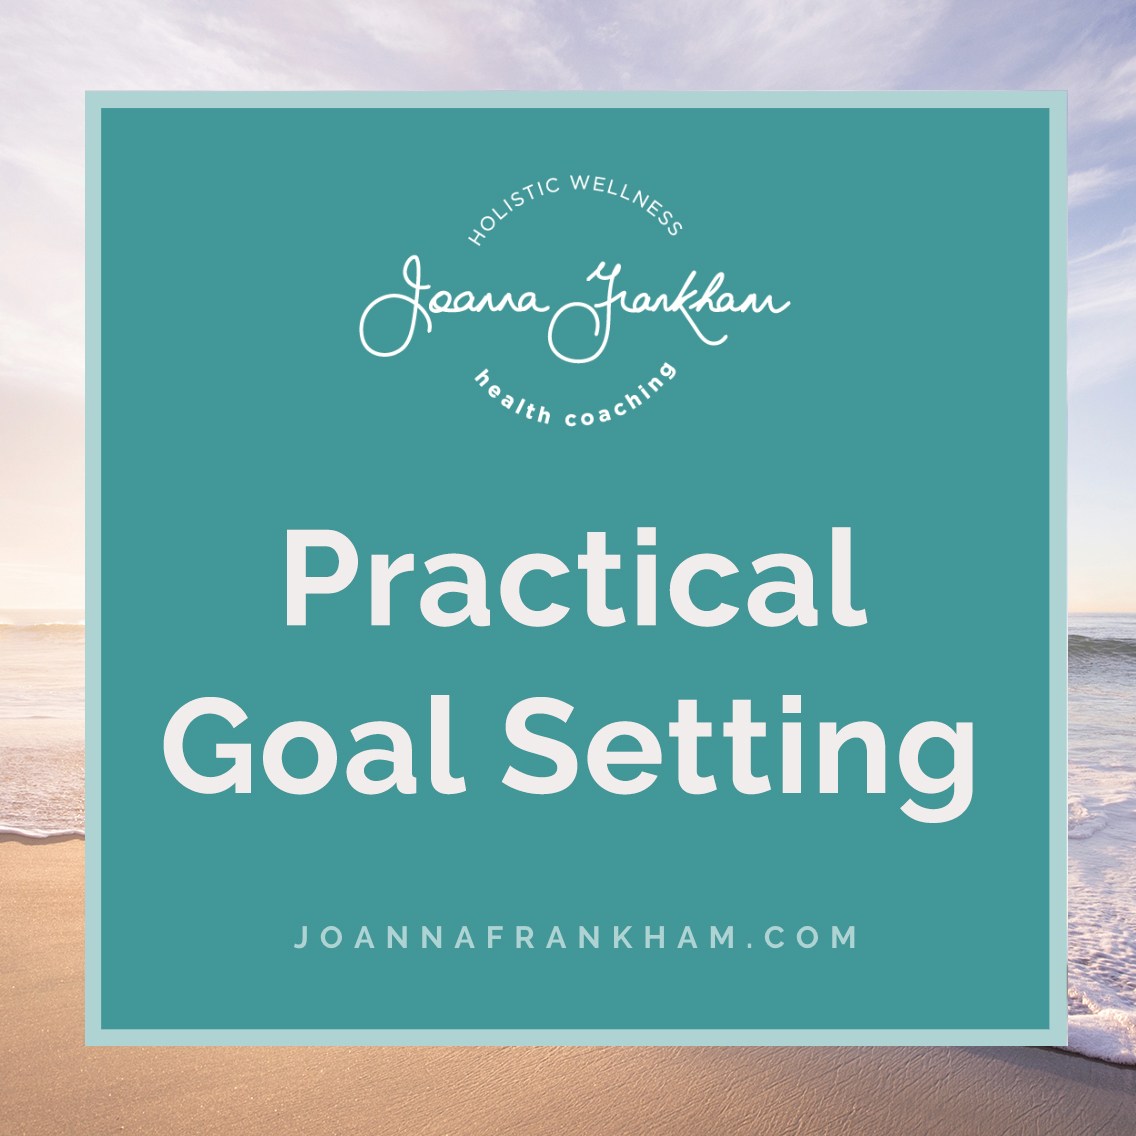 Practical Goal Setting eCourse